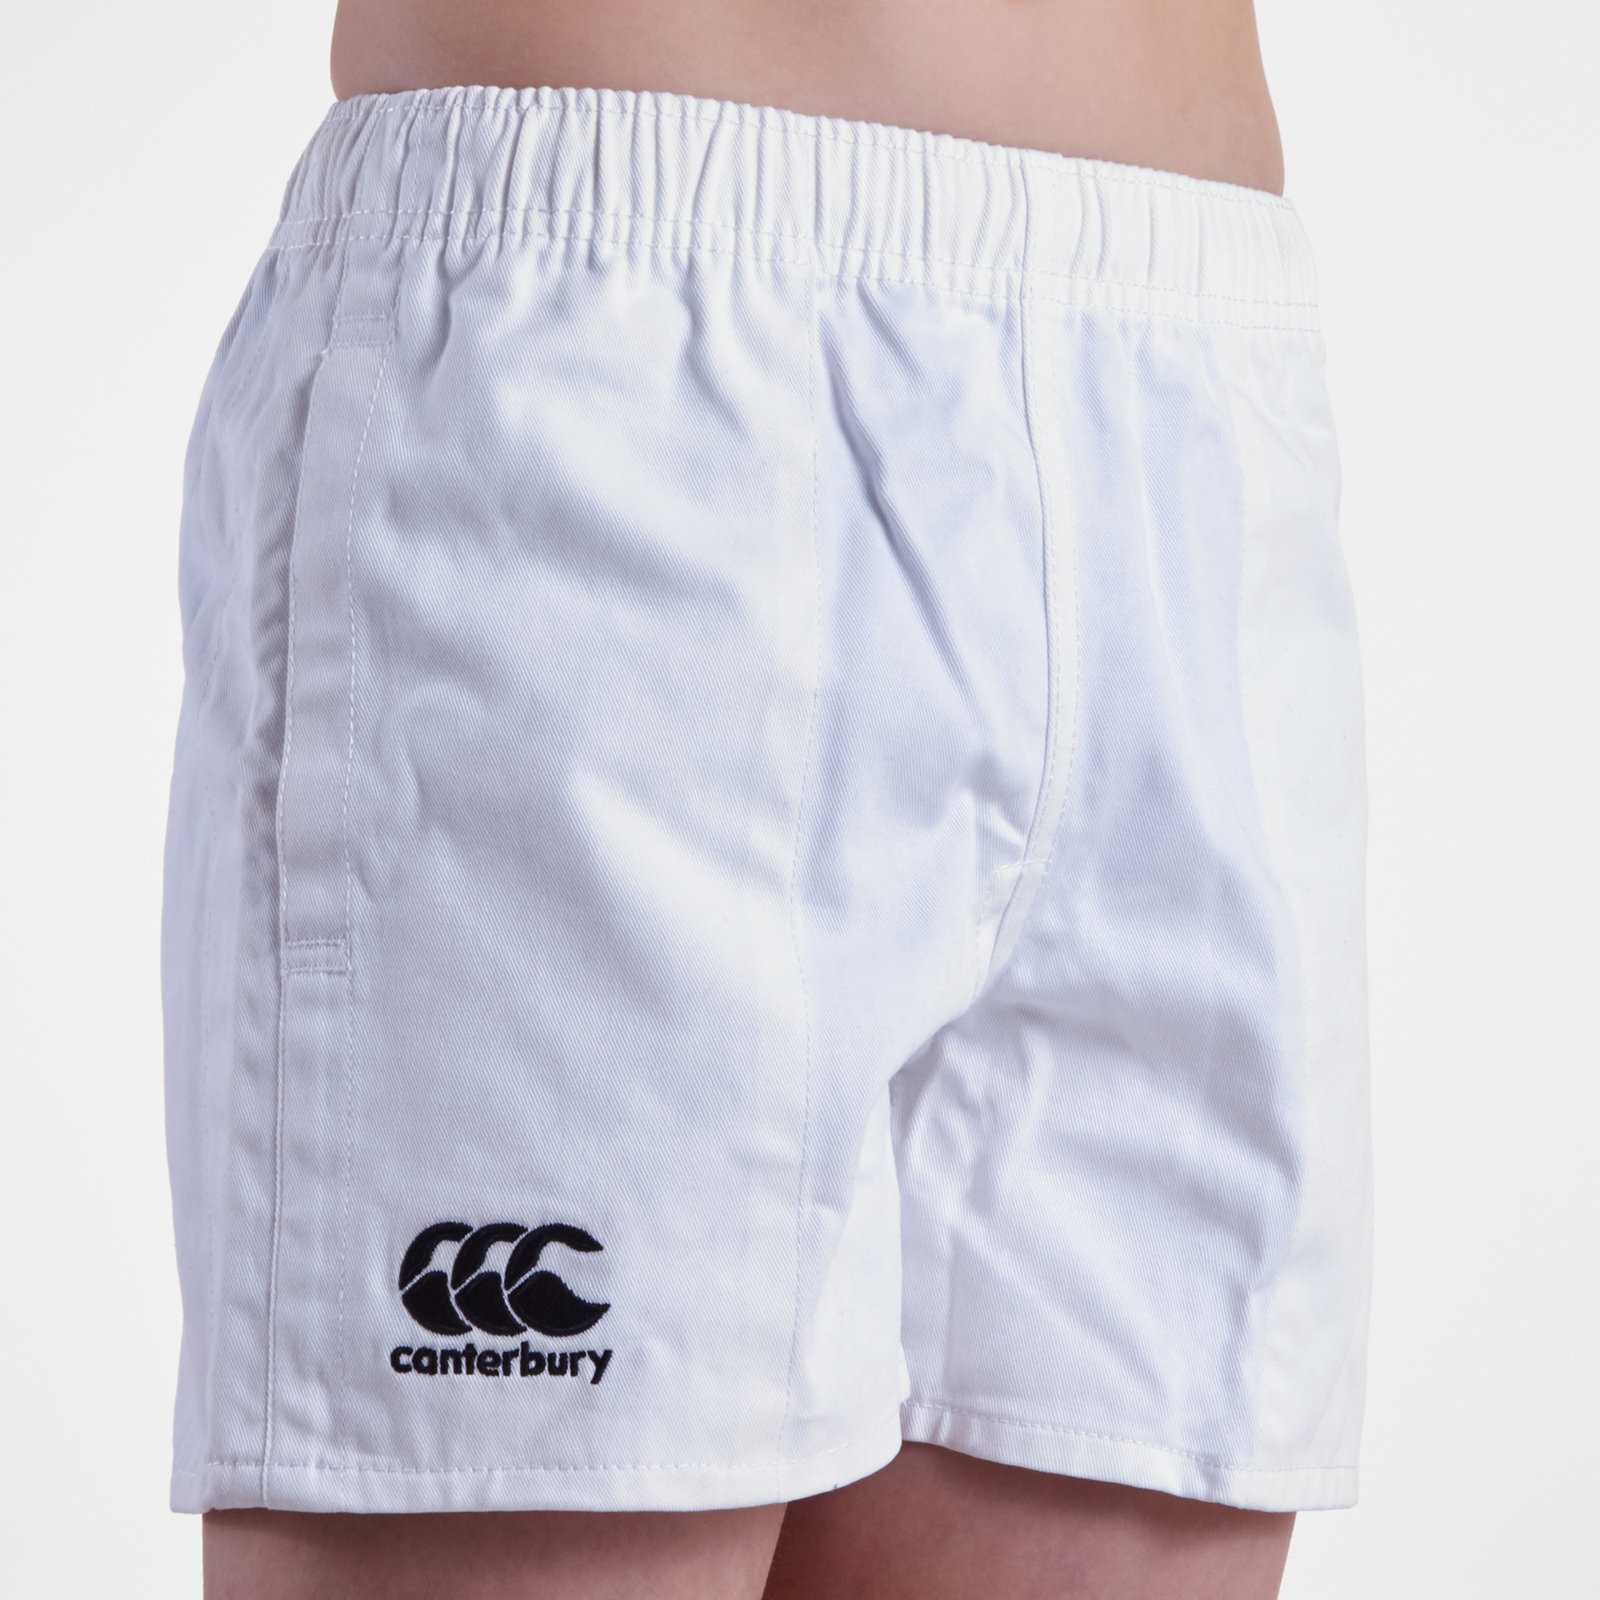 Professional Kids Cotton Rugby Shorts